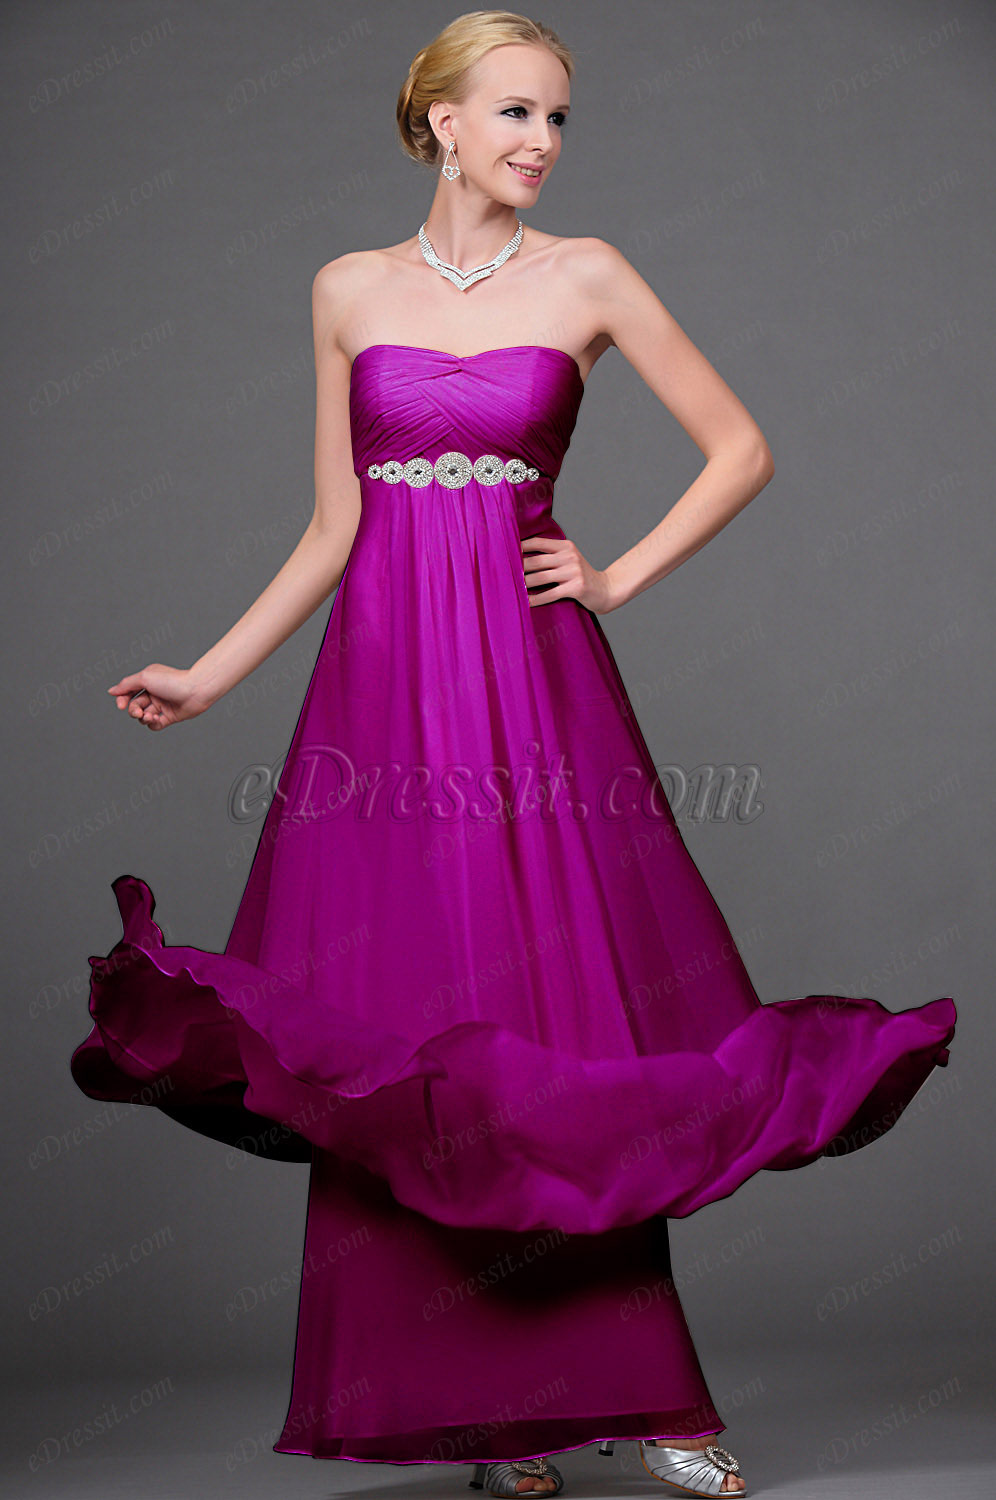 Clearance Sale! eDressit Pink Strapless Evening Dress--Size UK12 (00111607b)